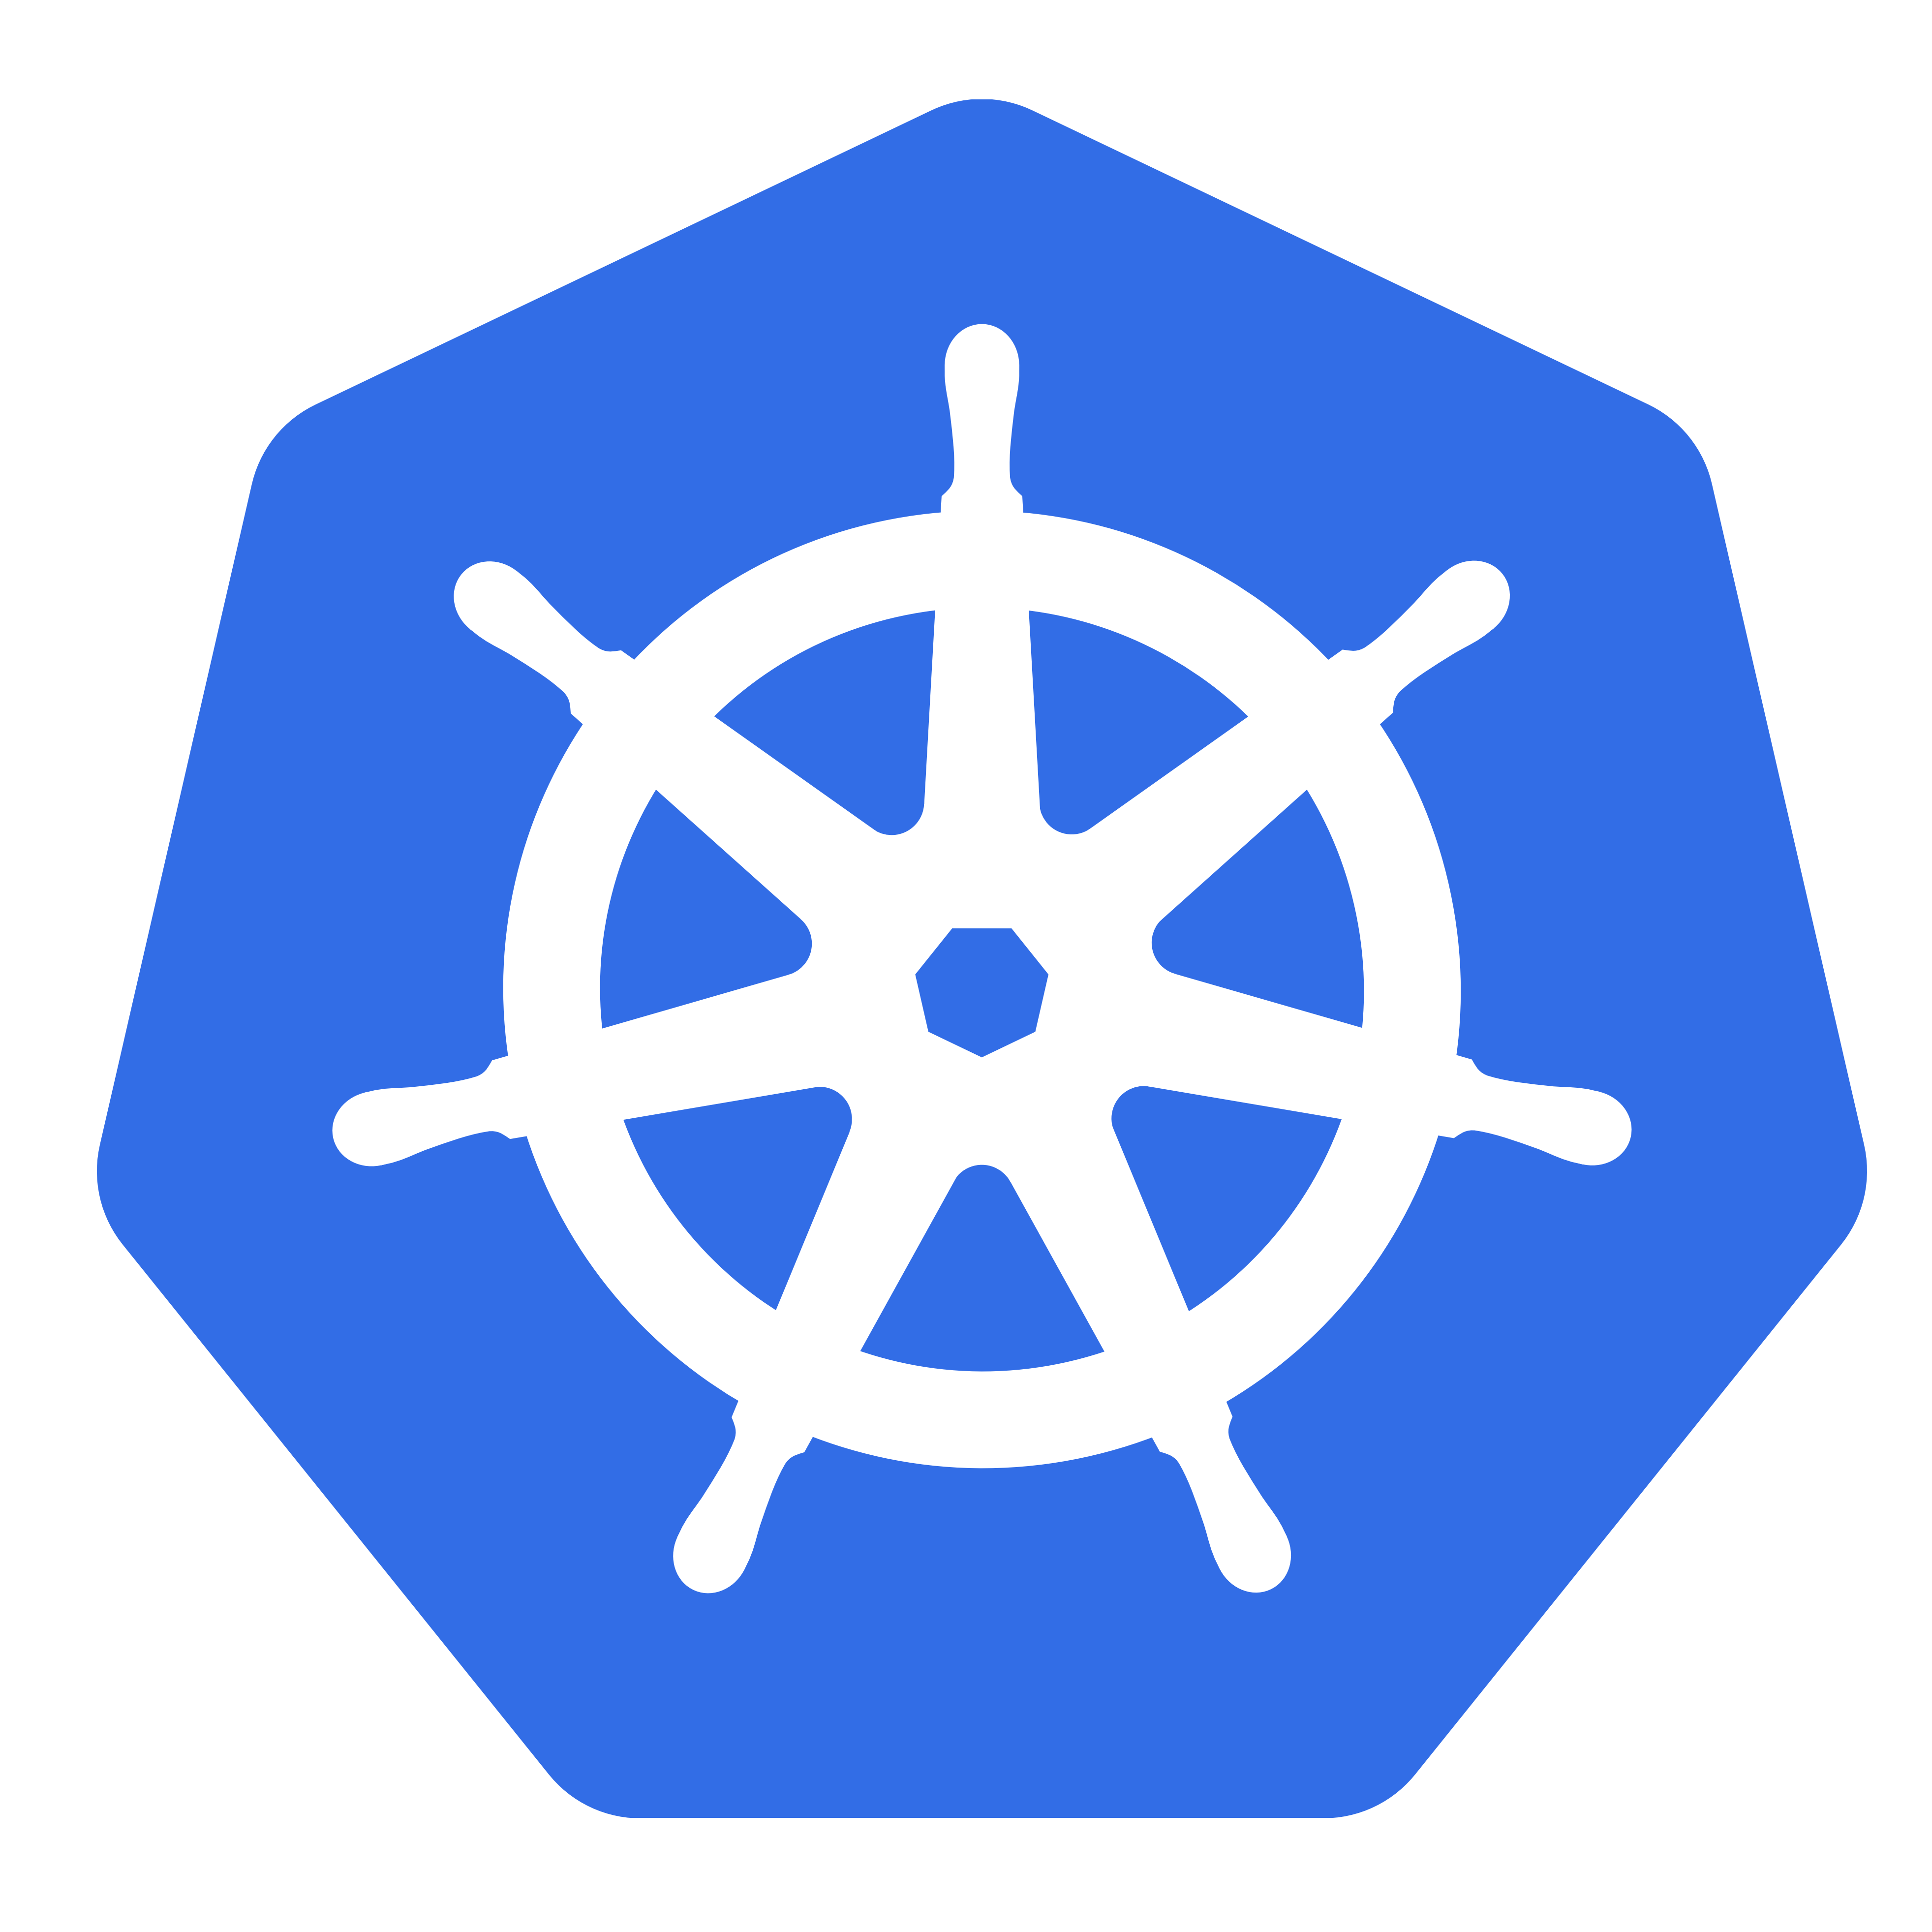 Future clipart deployment. Google releases kubernetes container